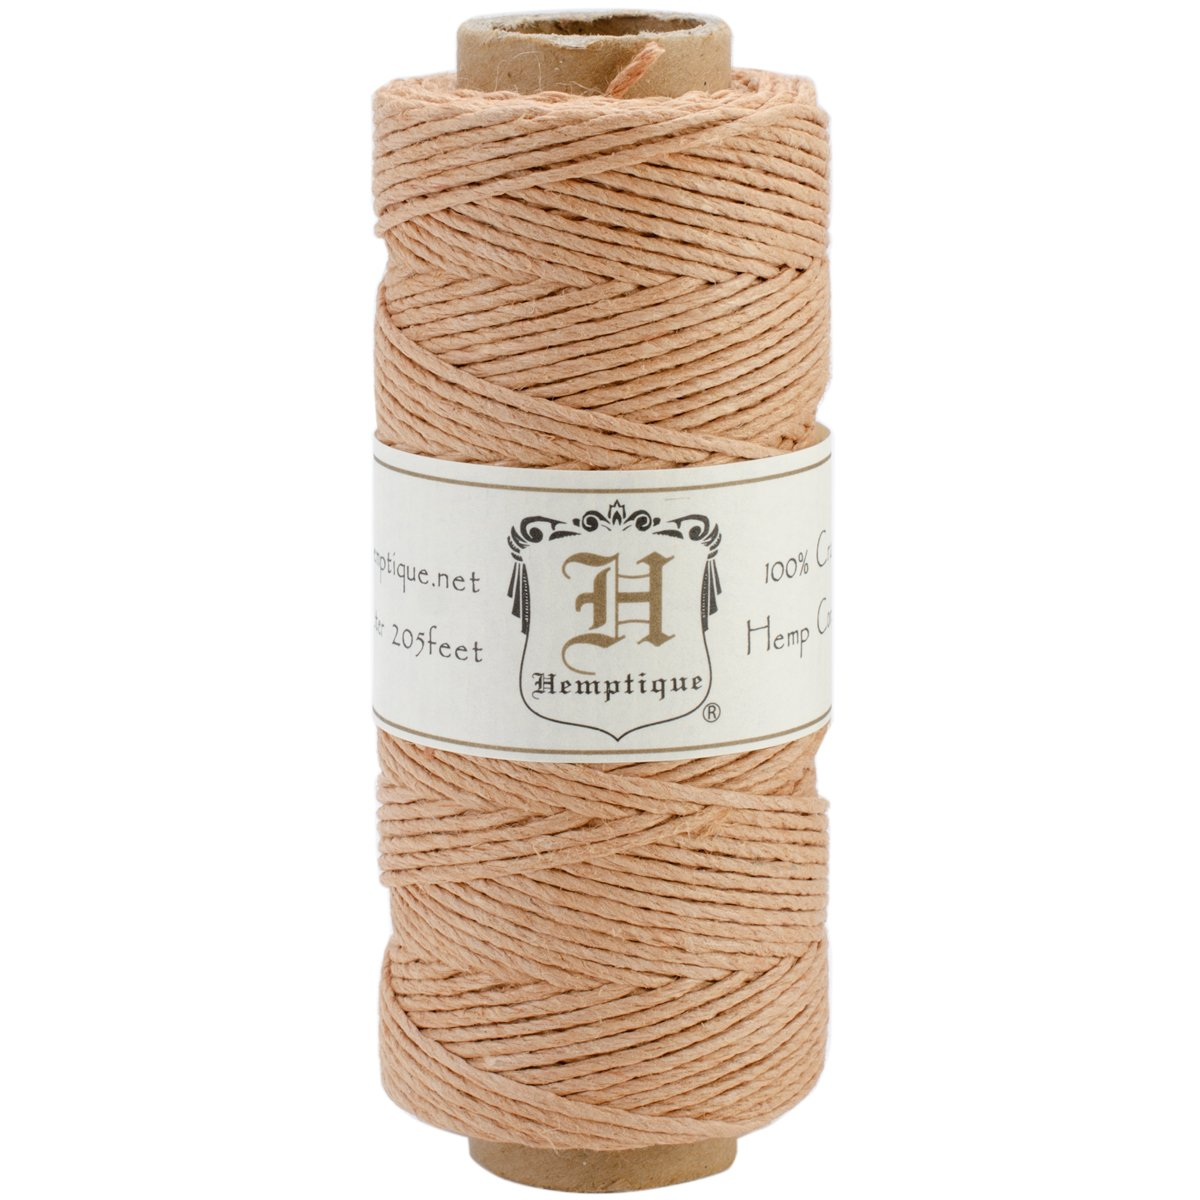 Hemptique 100% Hemp Cord Spool - 62.5 Meter Hemp String - Made with Love - No. 20 ~ 1mm Cord Thread for Jewelry Making, Macrame, Scrapbooking, DIY, & More - Cappuccino Candy